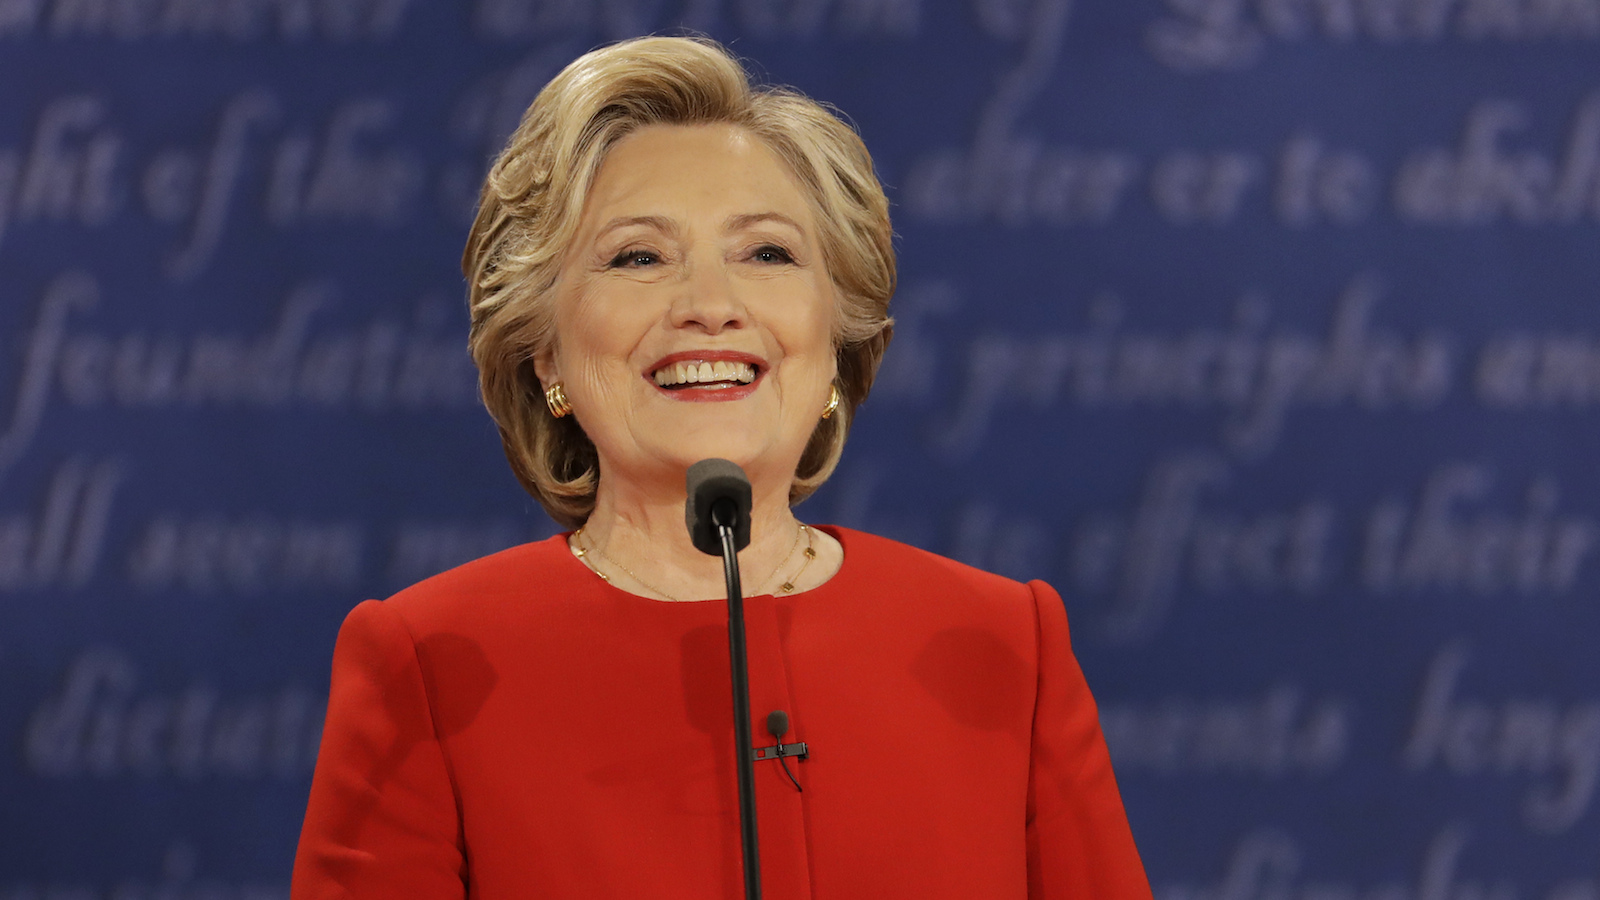 Democratic presidential nominee Hillary Clinton speaks during the presidential debate with Republican presidential nominee Donald Trump at Hofstra University in Hempstead, N.Y., Monday, Sept. 26, 2016. (AP Photo/Julio Cortez)